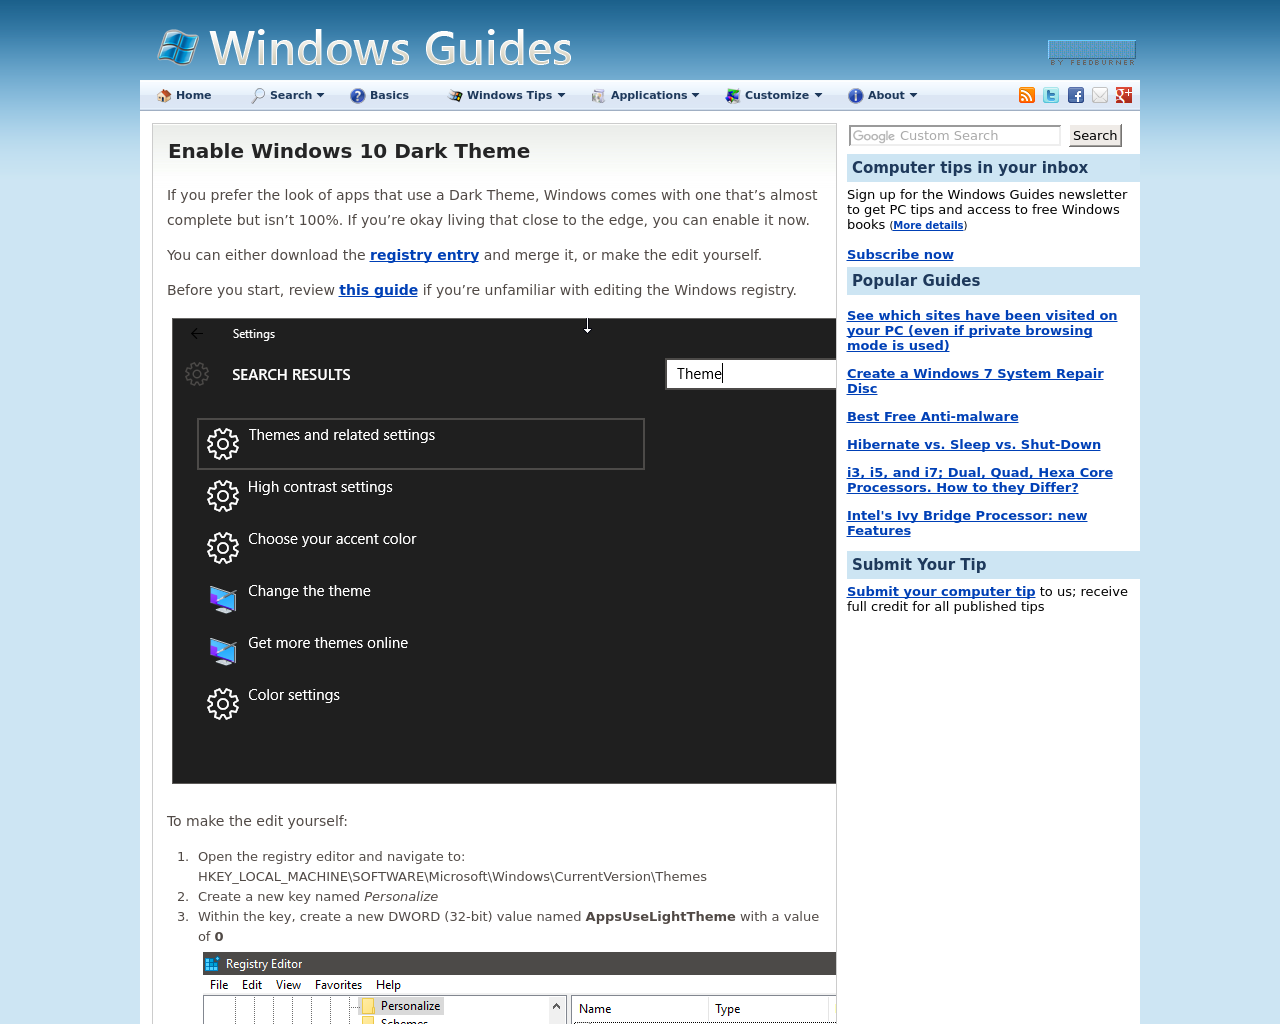 Windows-Guides-Advertising-Reviews-Pricing